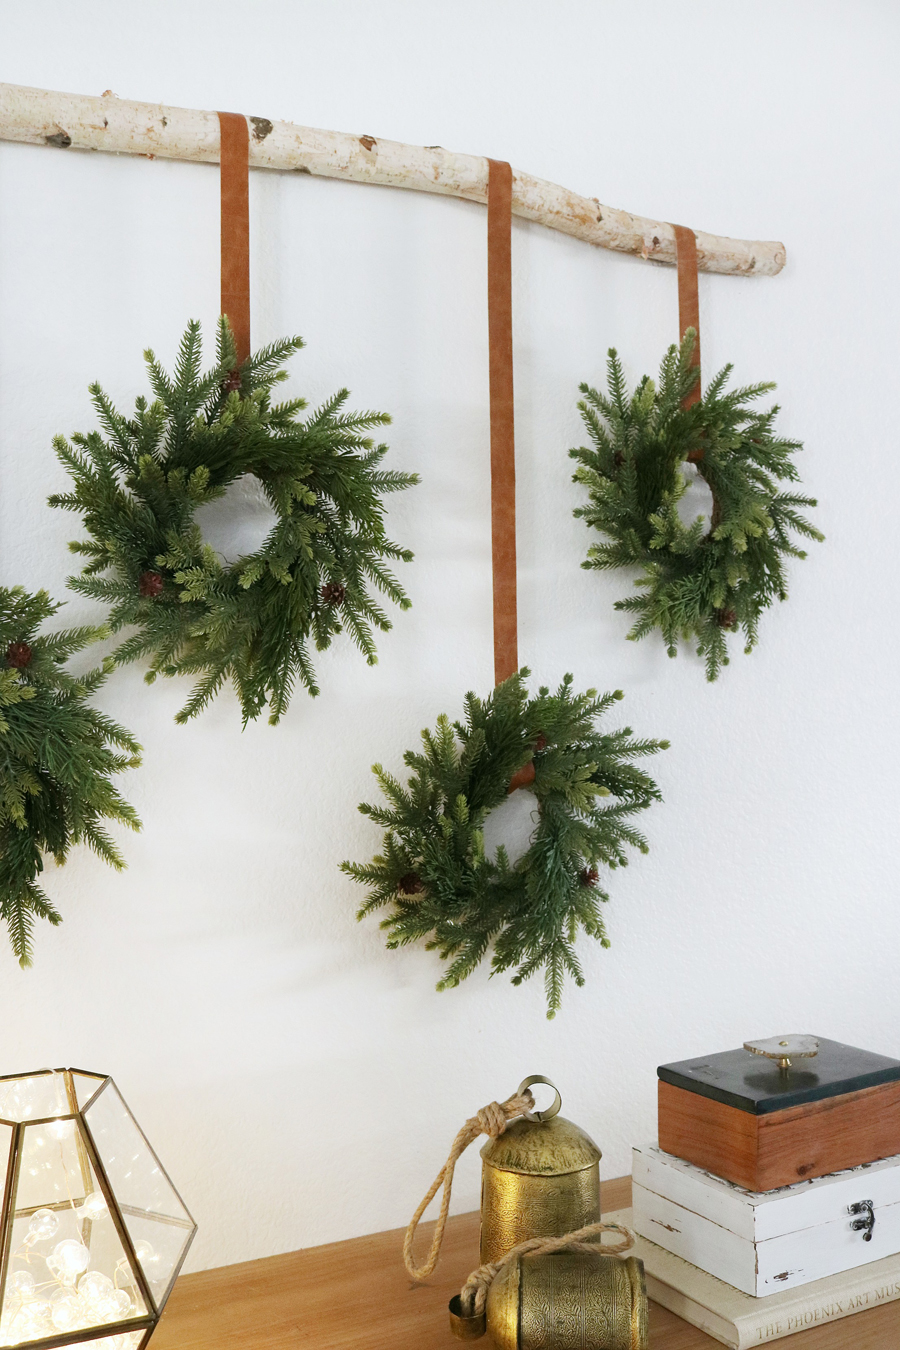 Create Simple and Easy Holiday Decor by Hanging Classic Holiday Wreaths with A Modern Twist